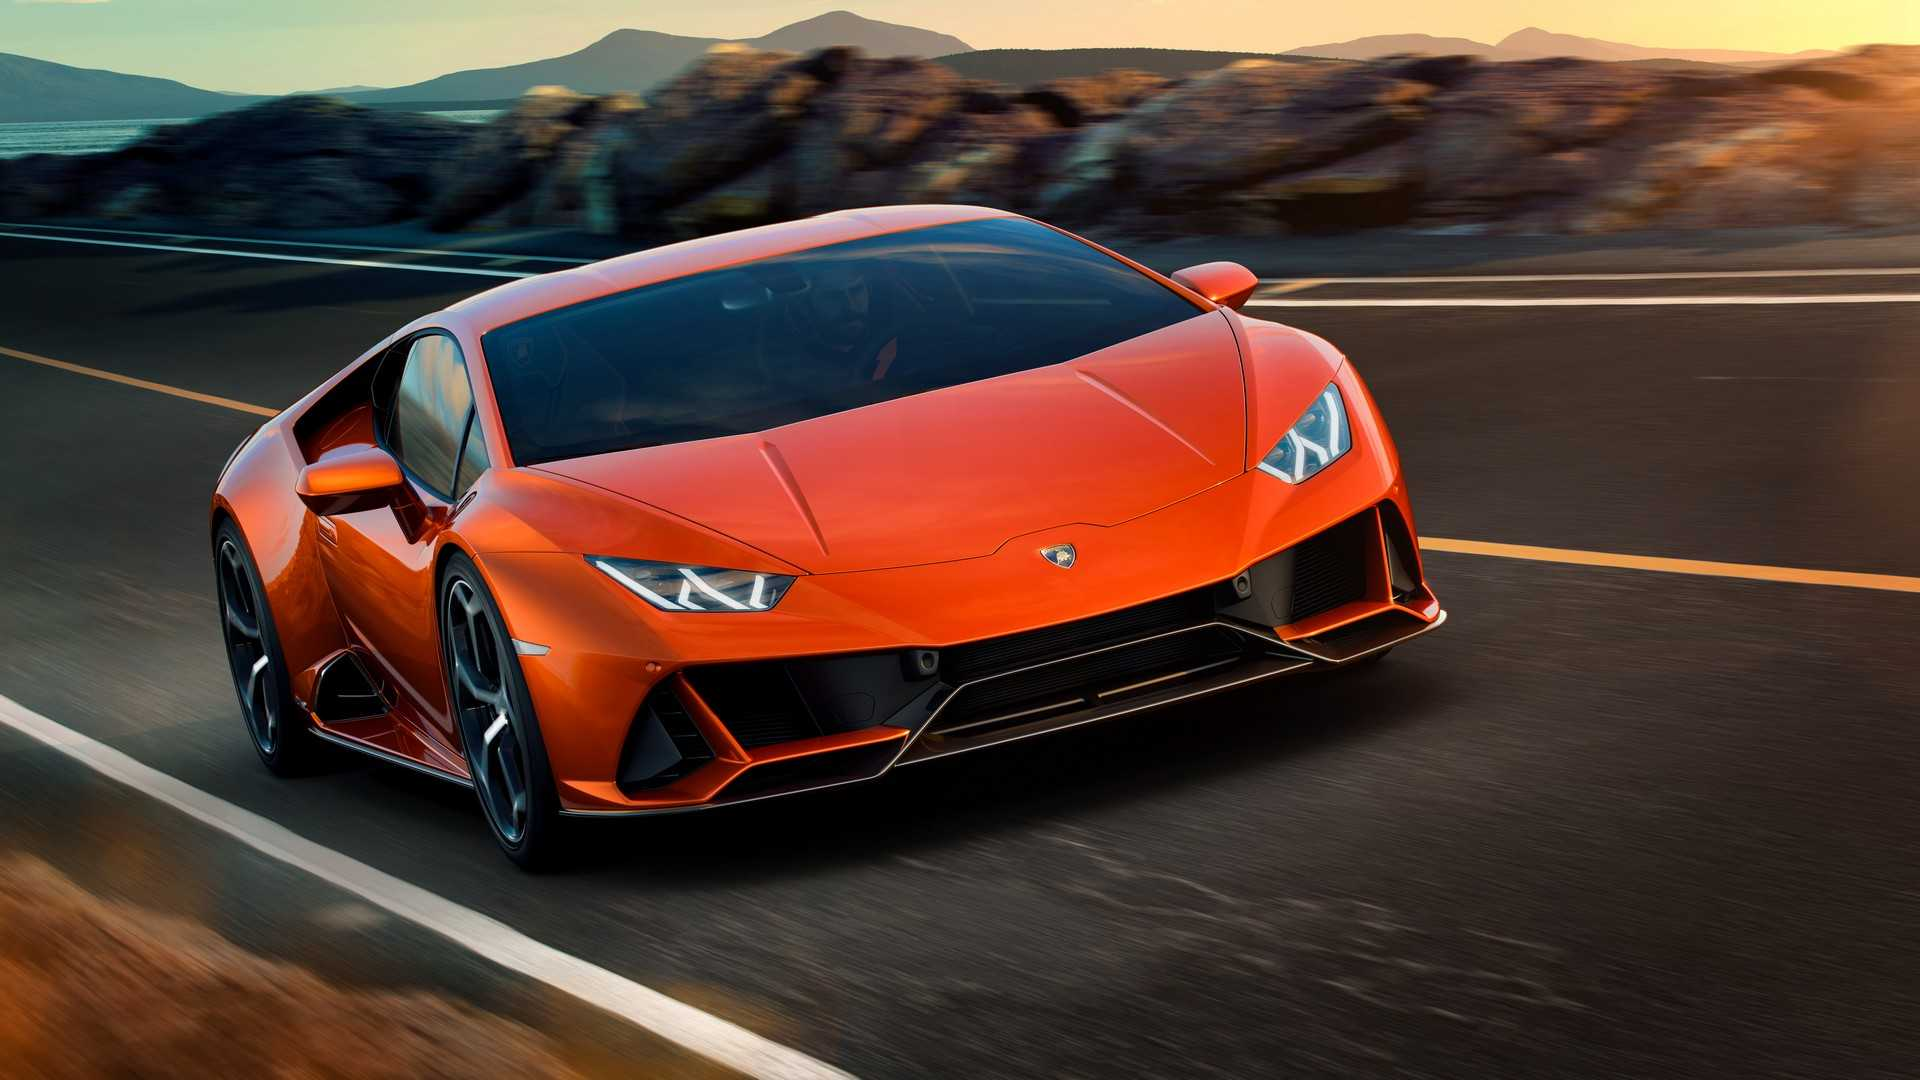 44 All New 2020 Lamborghini Huracan Review